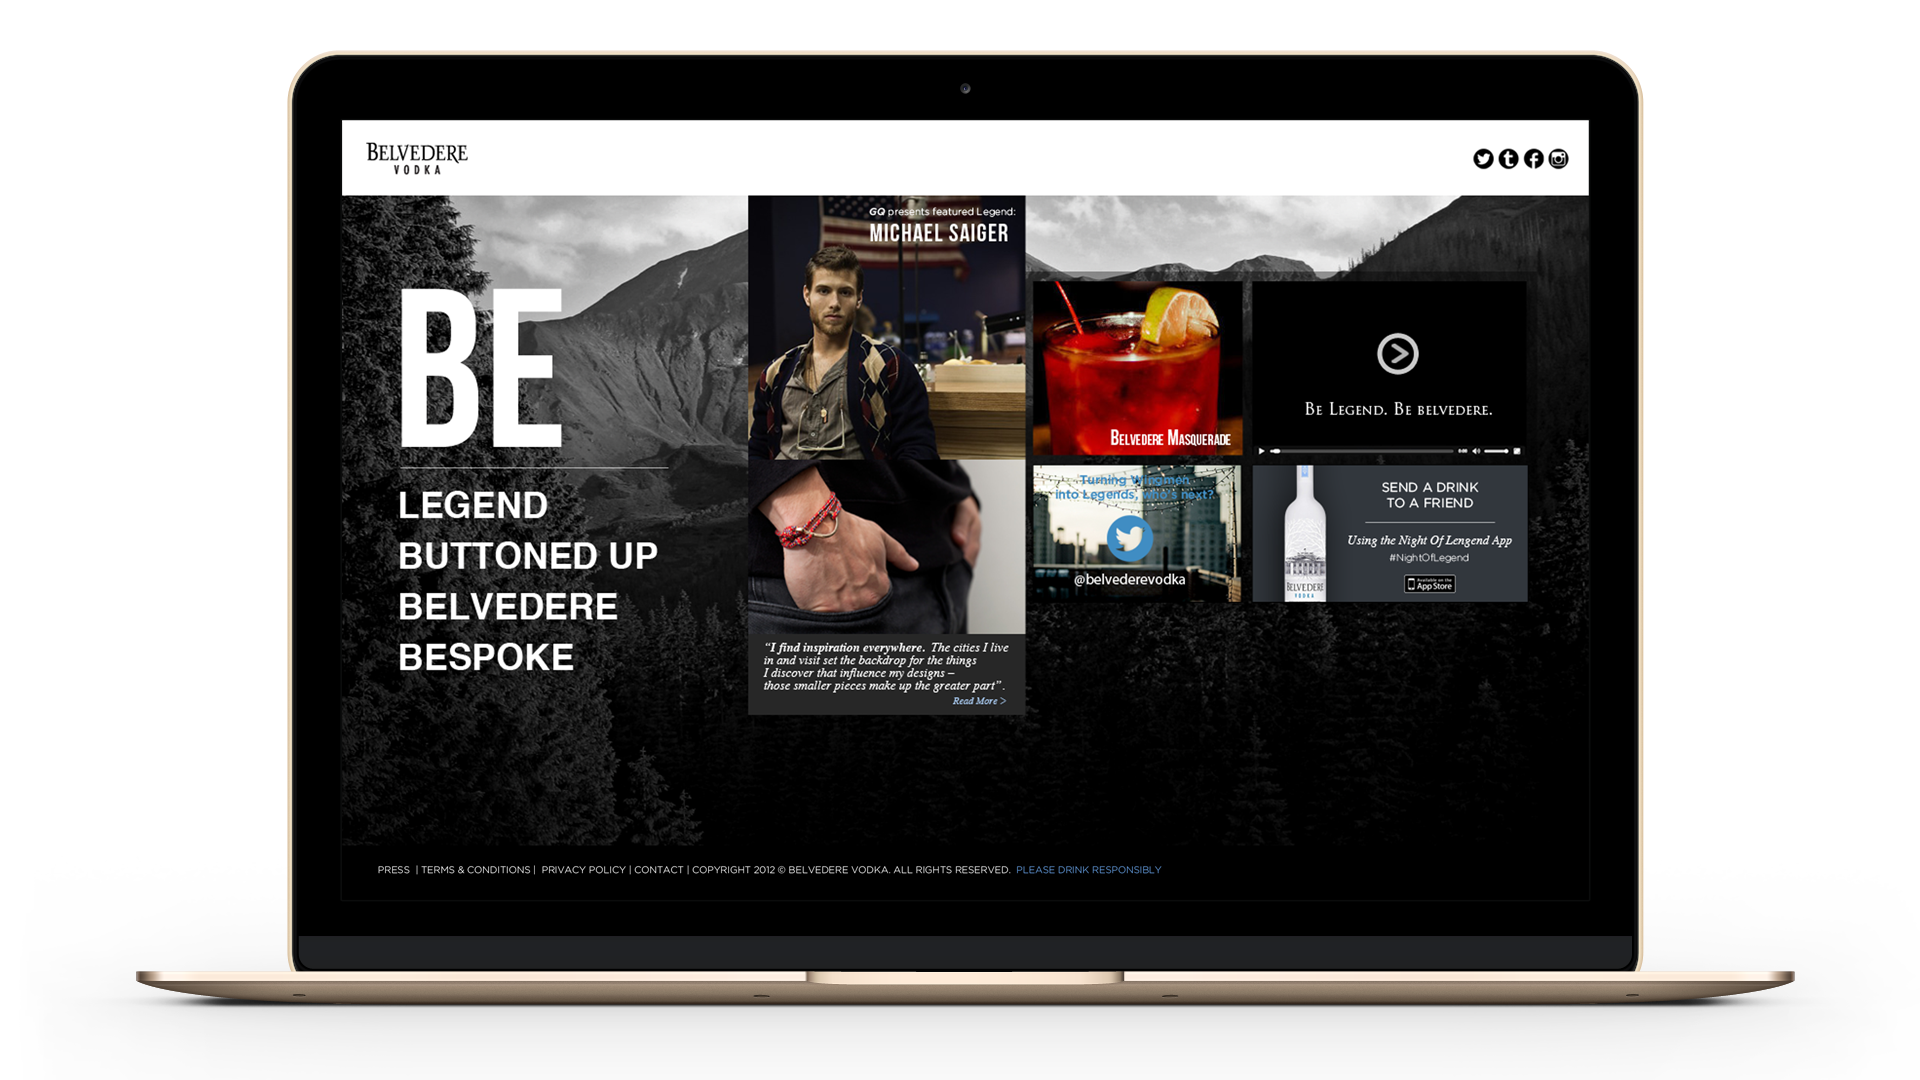 Website concept for Belvedere campaign